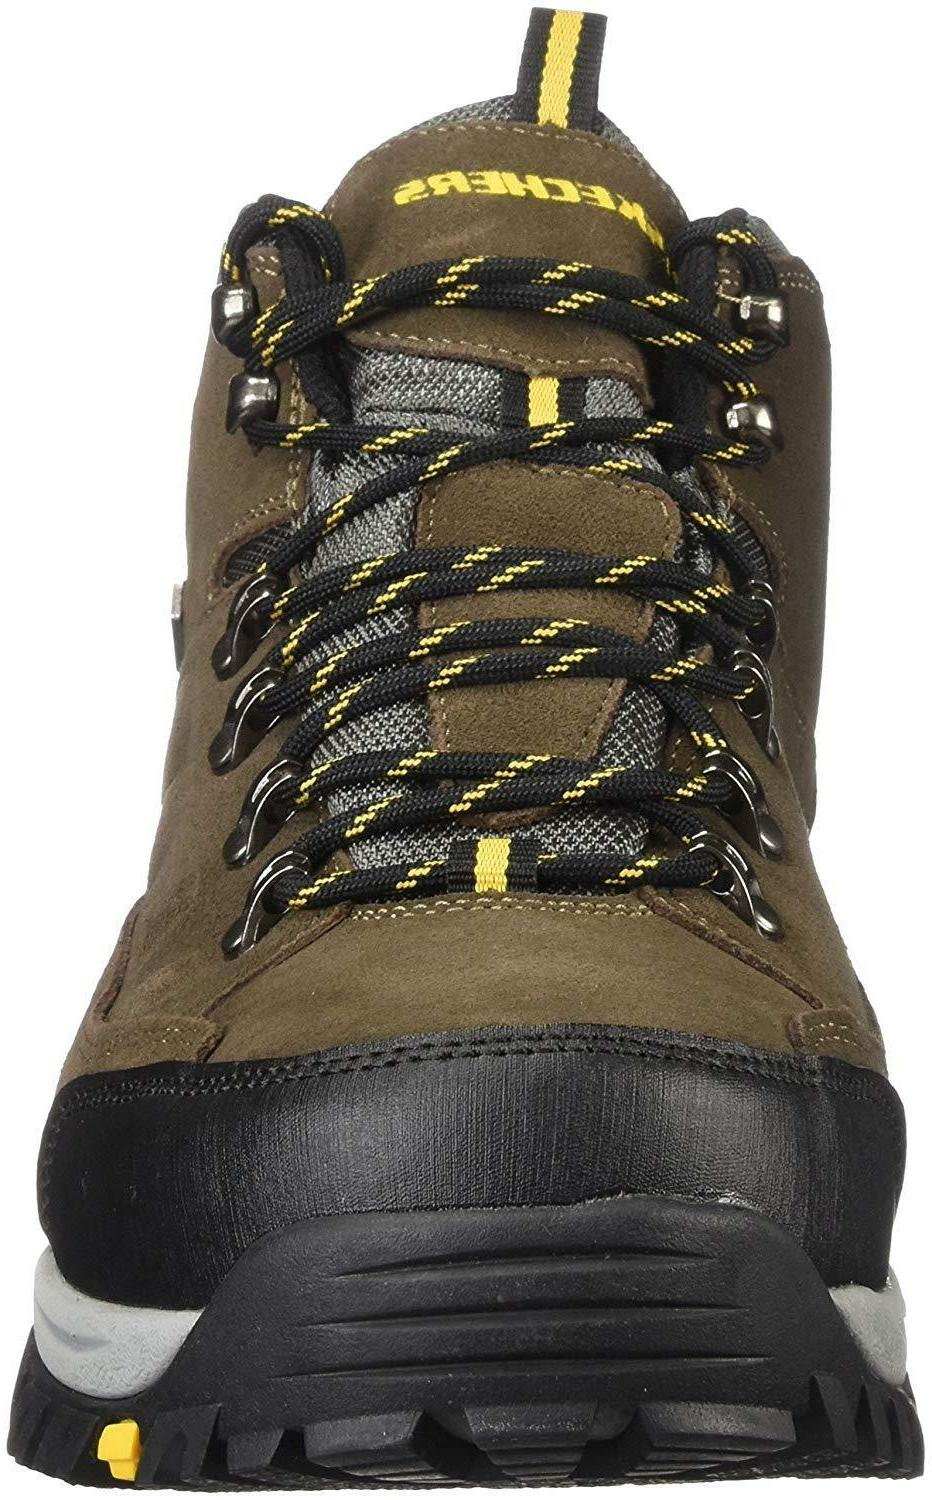 Skechers Relment Pelmo Chukka Waterproof Boot